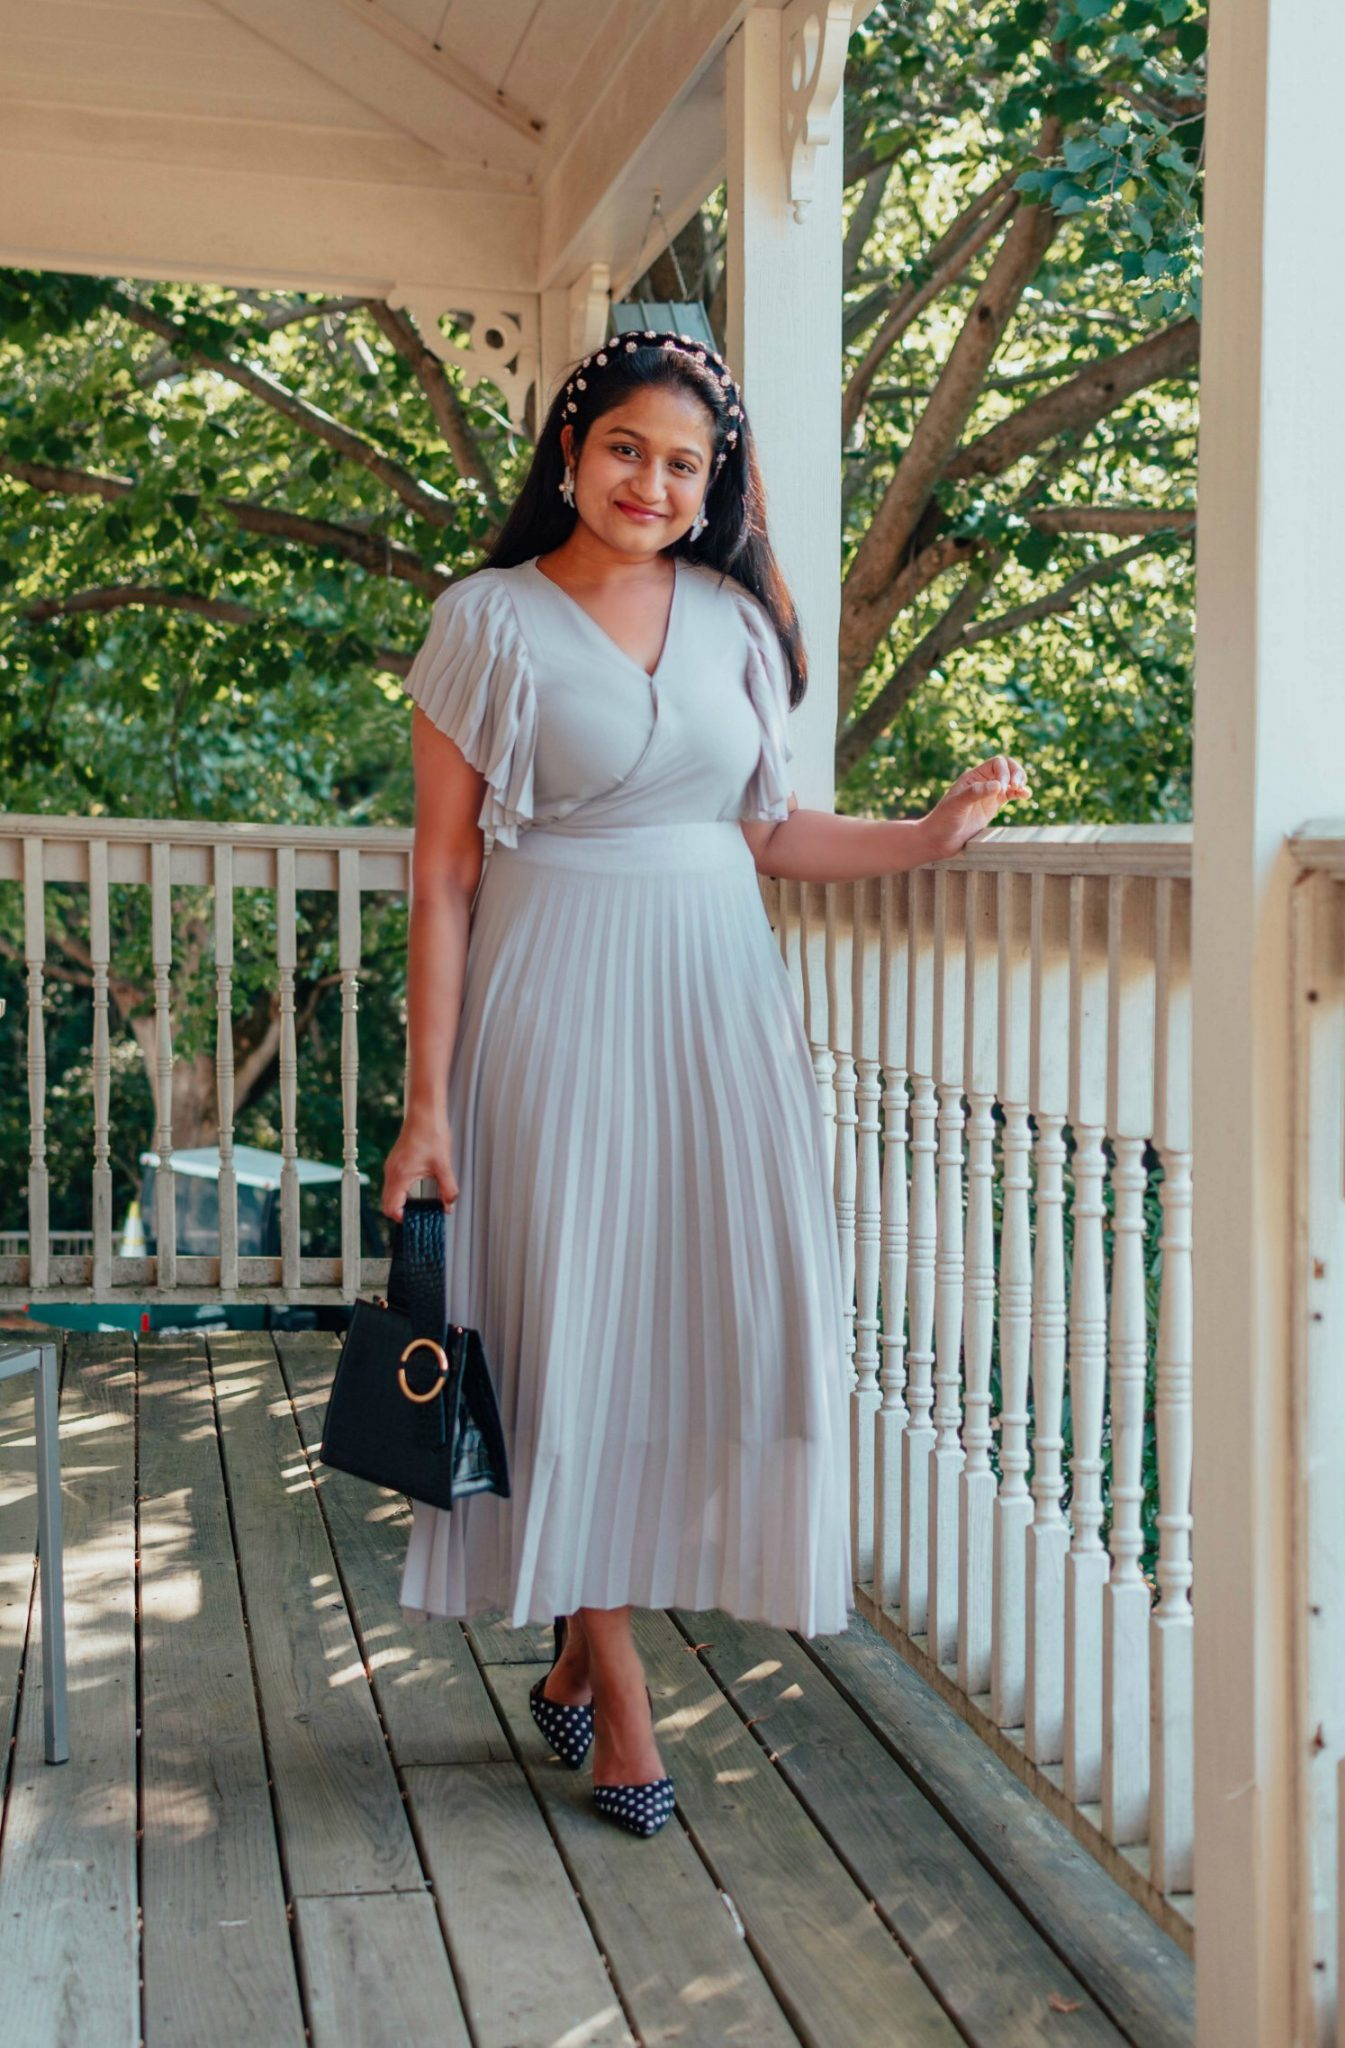 Wearing Ivy City co pleated dress in lilac, Parisa Wang Enchanted Top handle Bag, Pearl headband.4